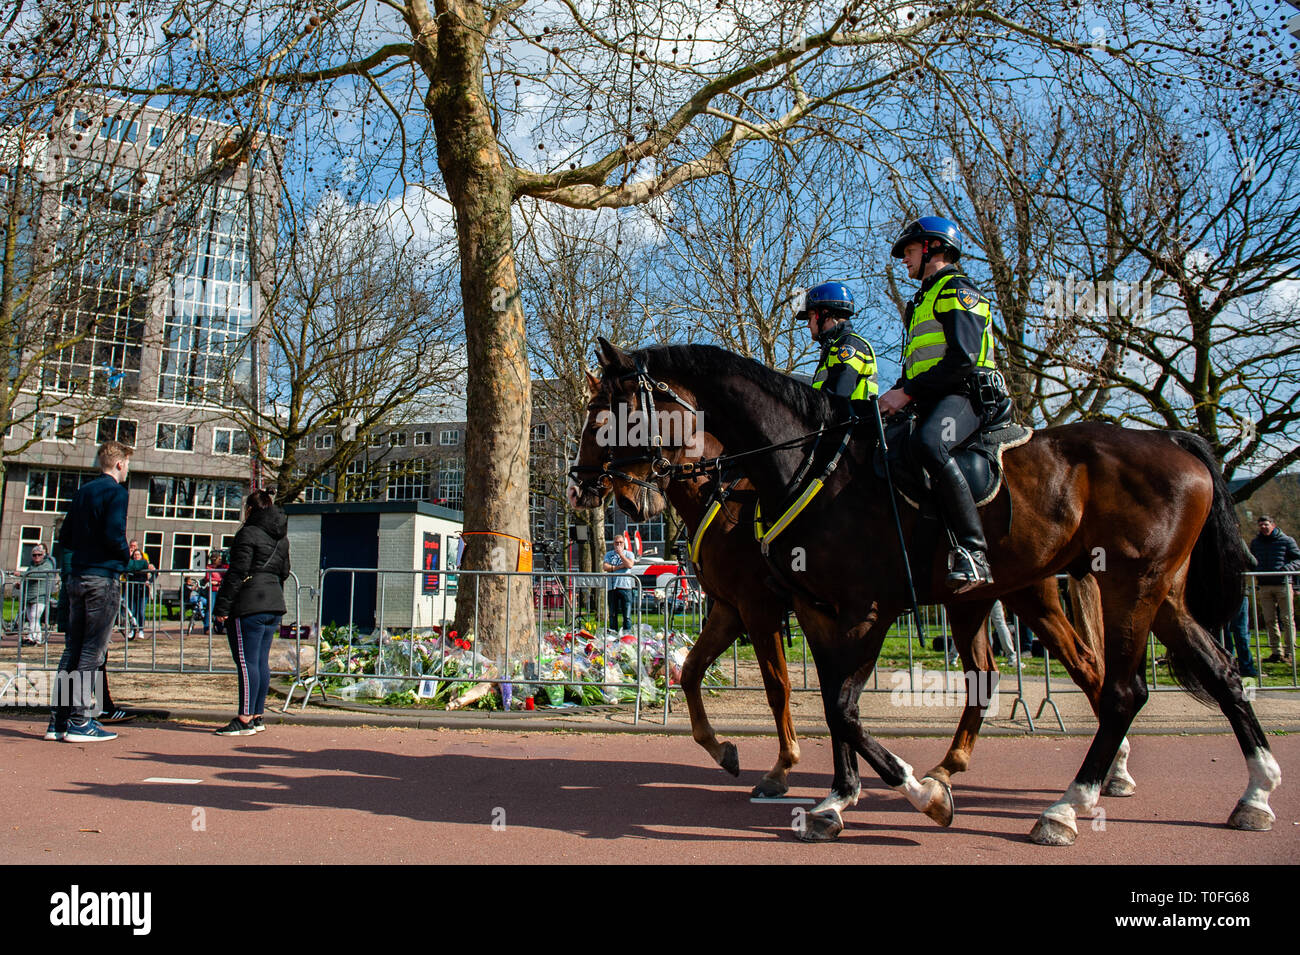 Dutch Police Officers Stock Photos & Dutch Police Officers Stock